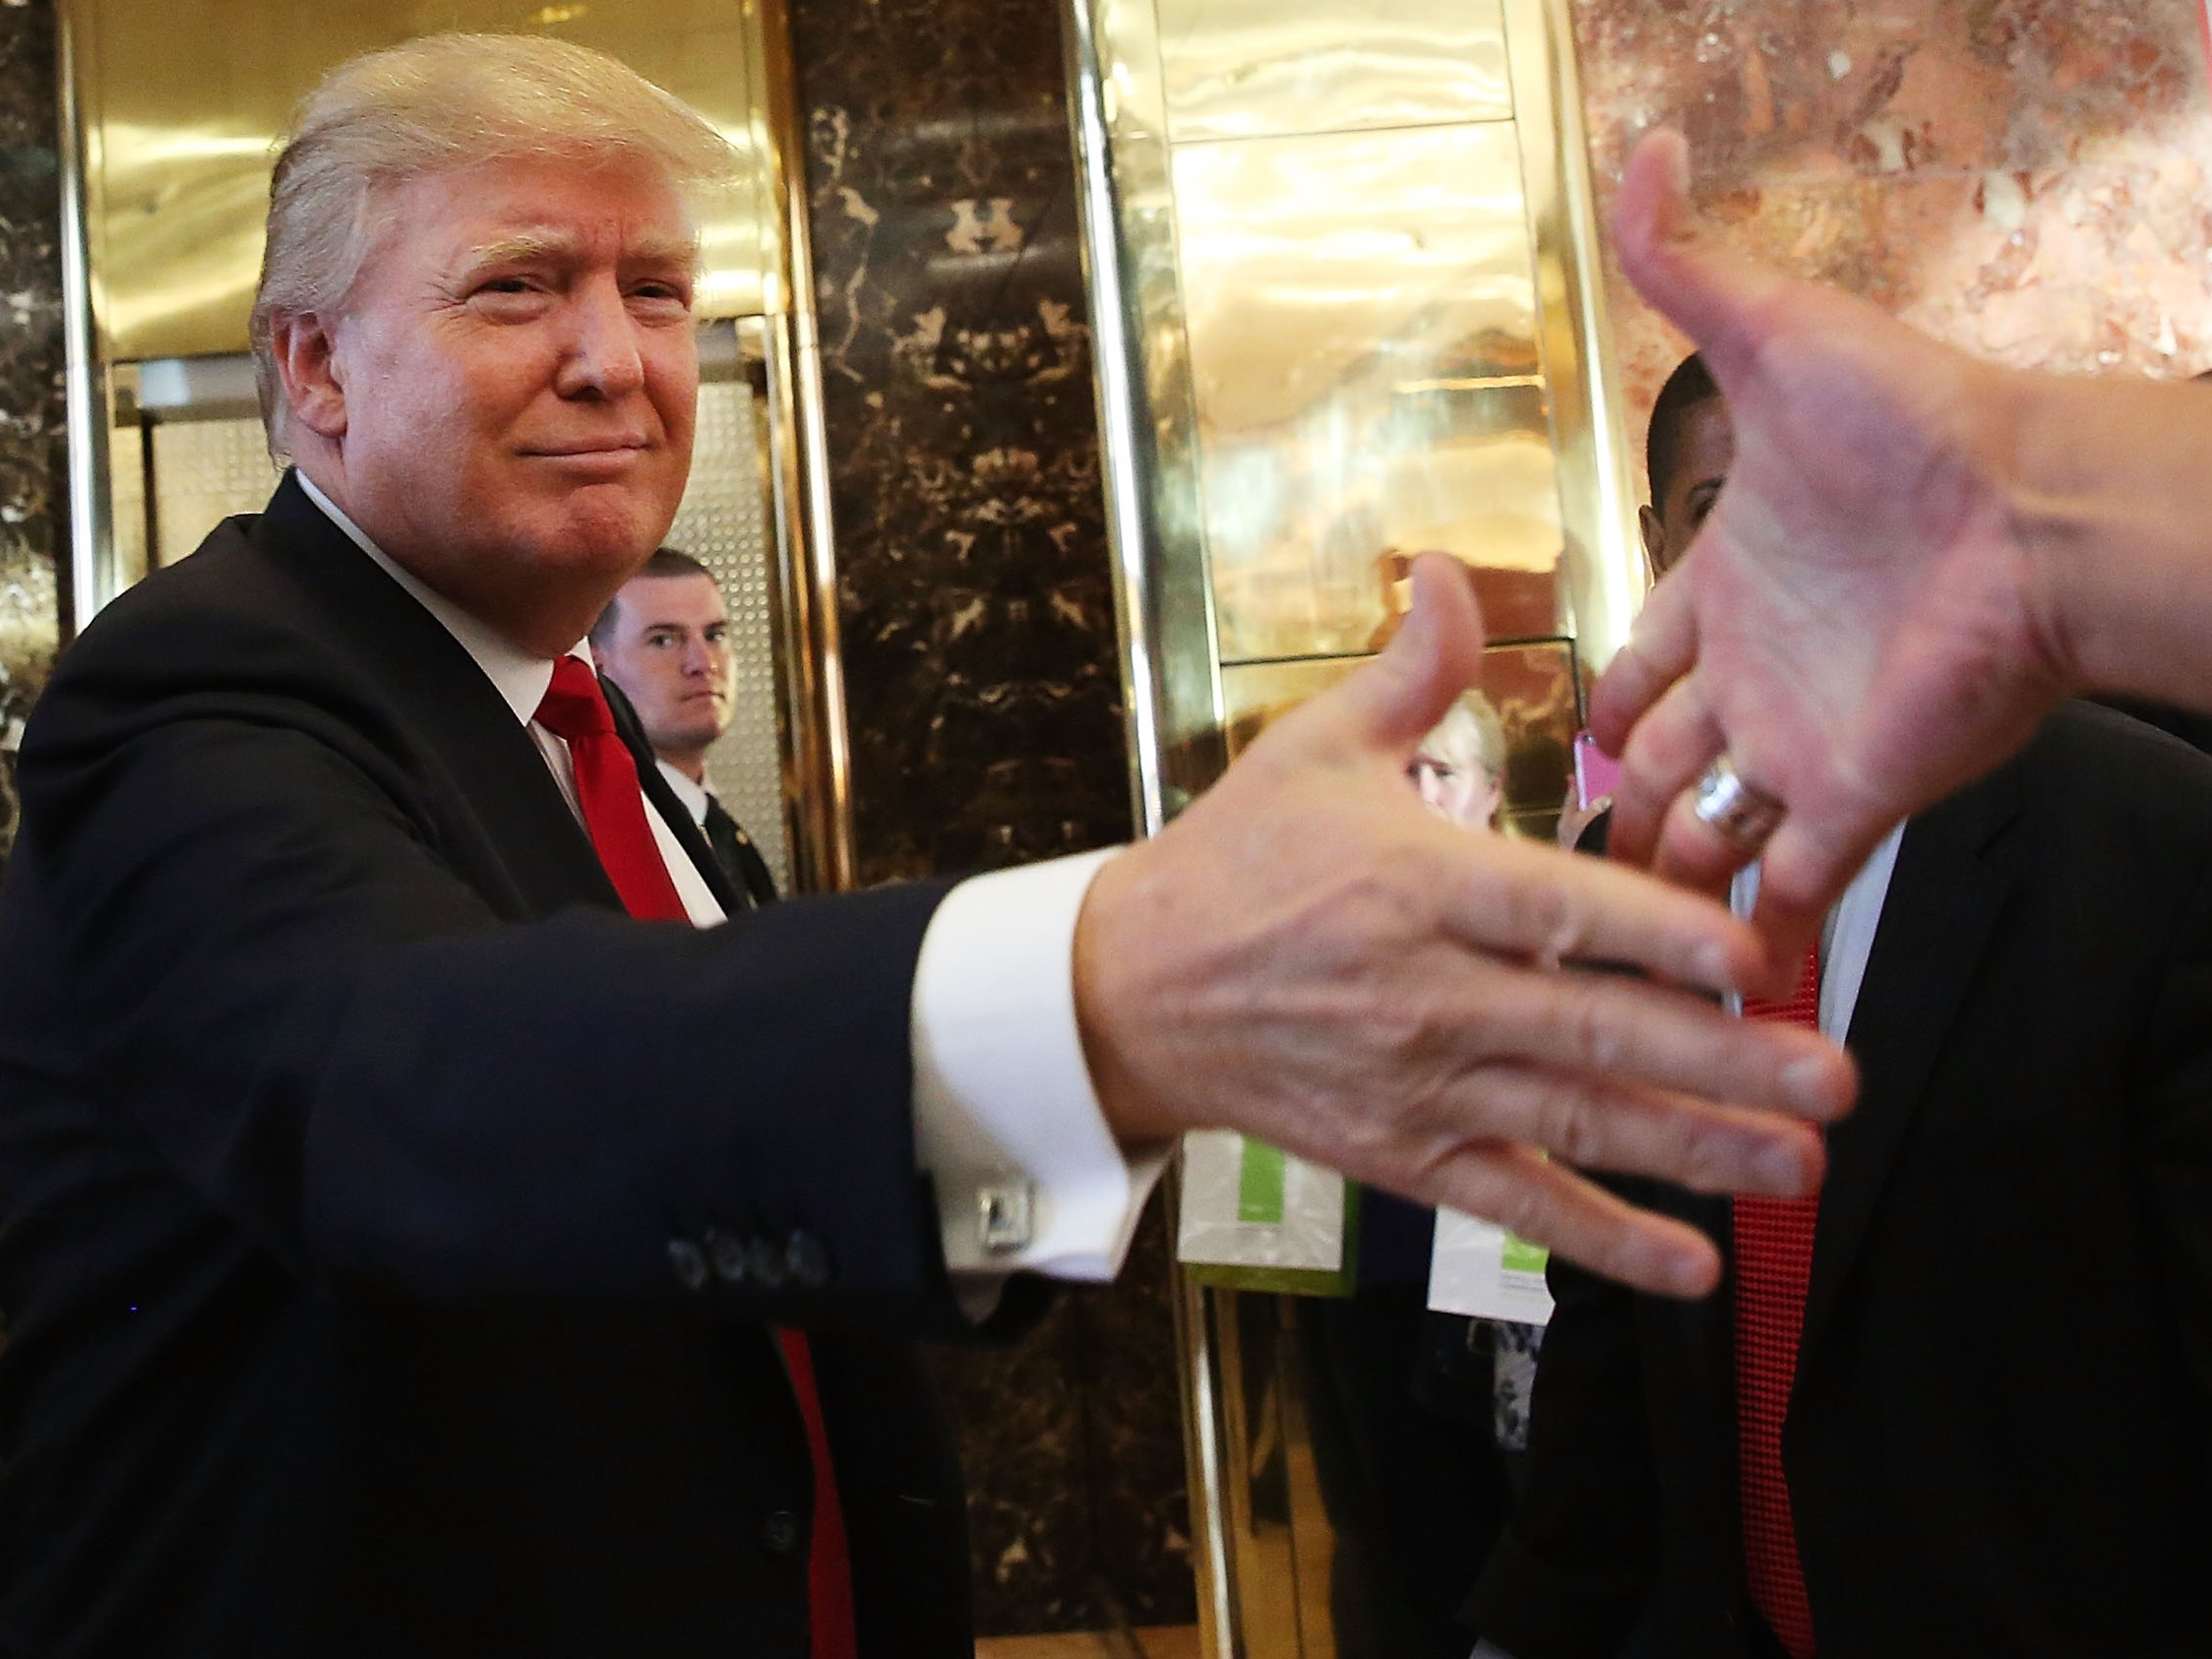 Presidential Candidate Donald Trump Greets A Crowd After Taping TV Interview